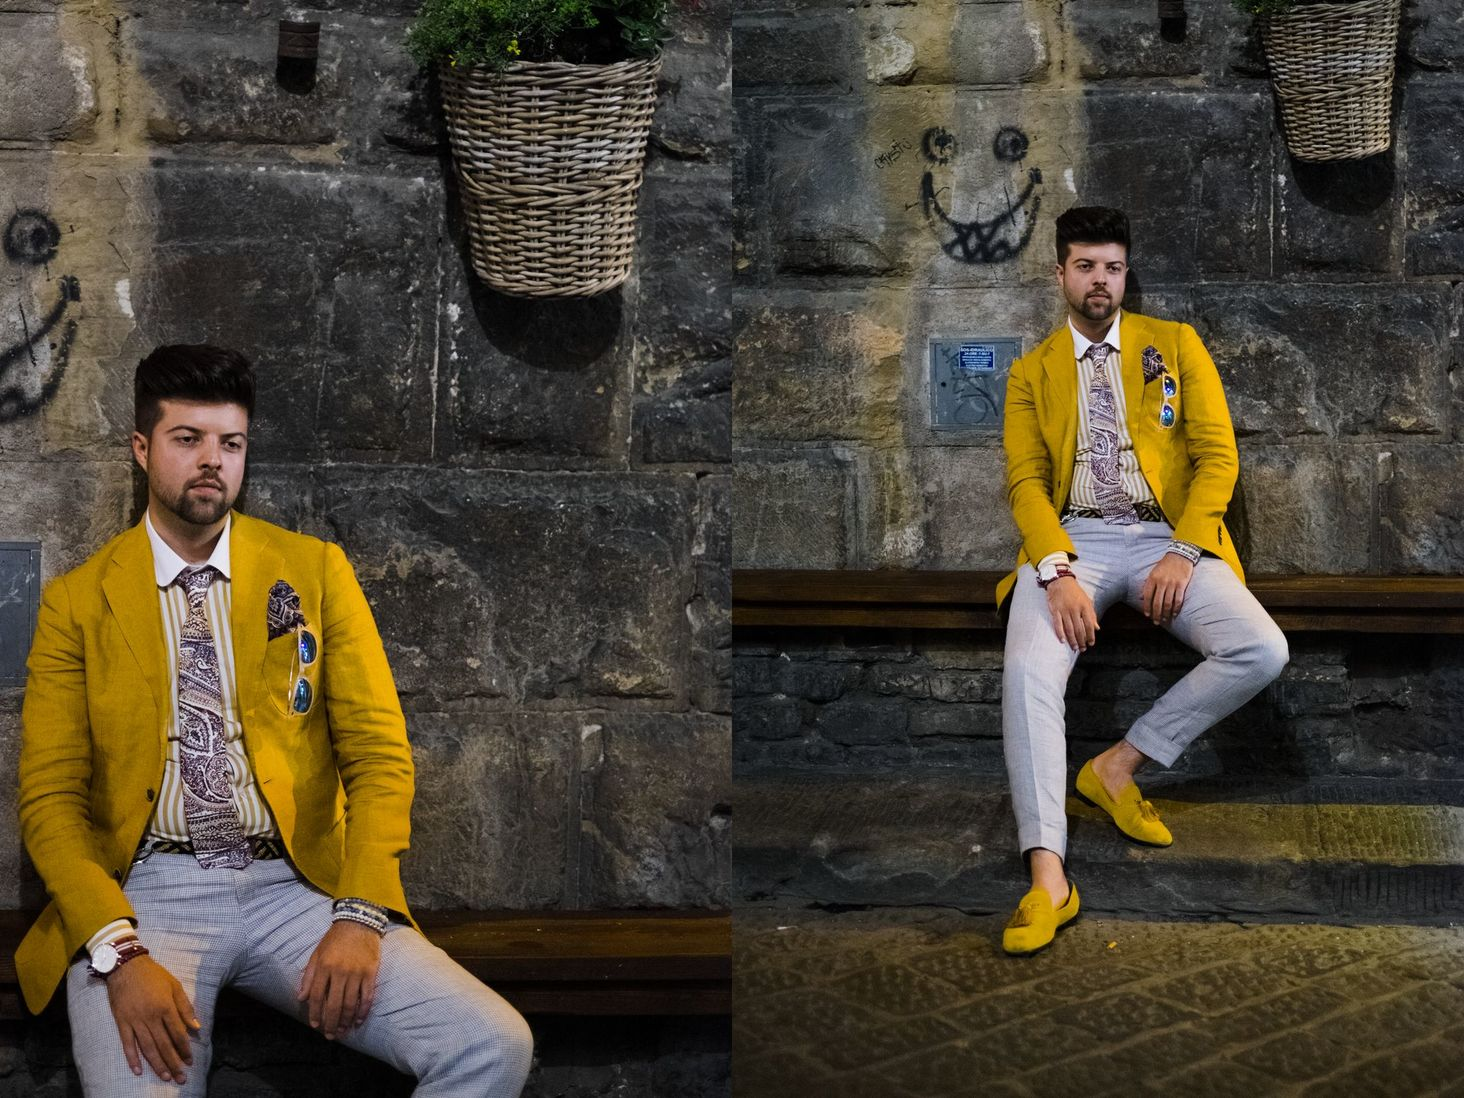 alessandro-michelazzi-fashion-photography-firenze-36